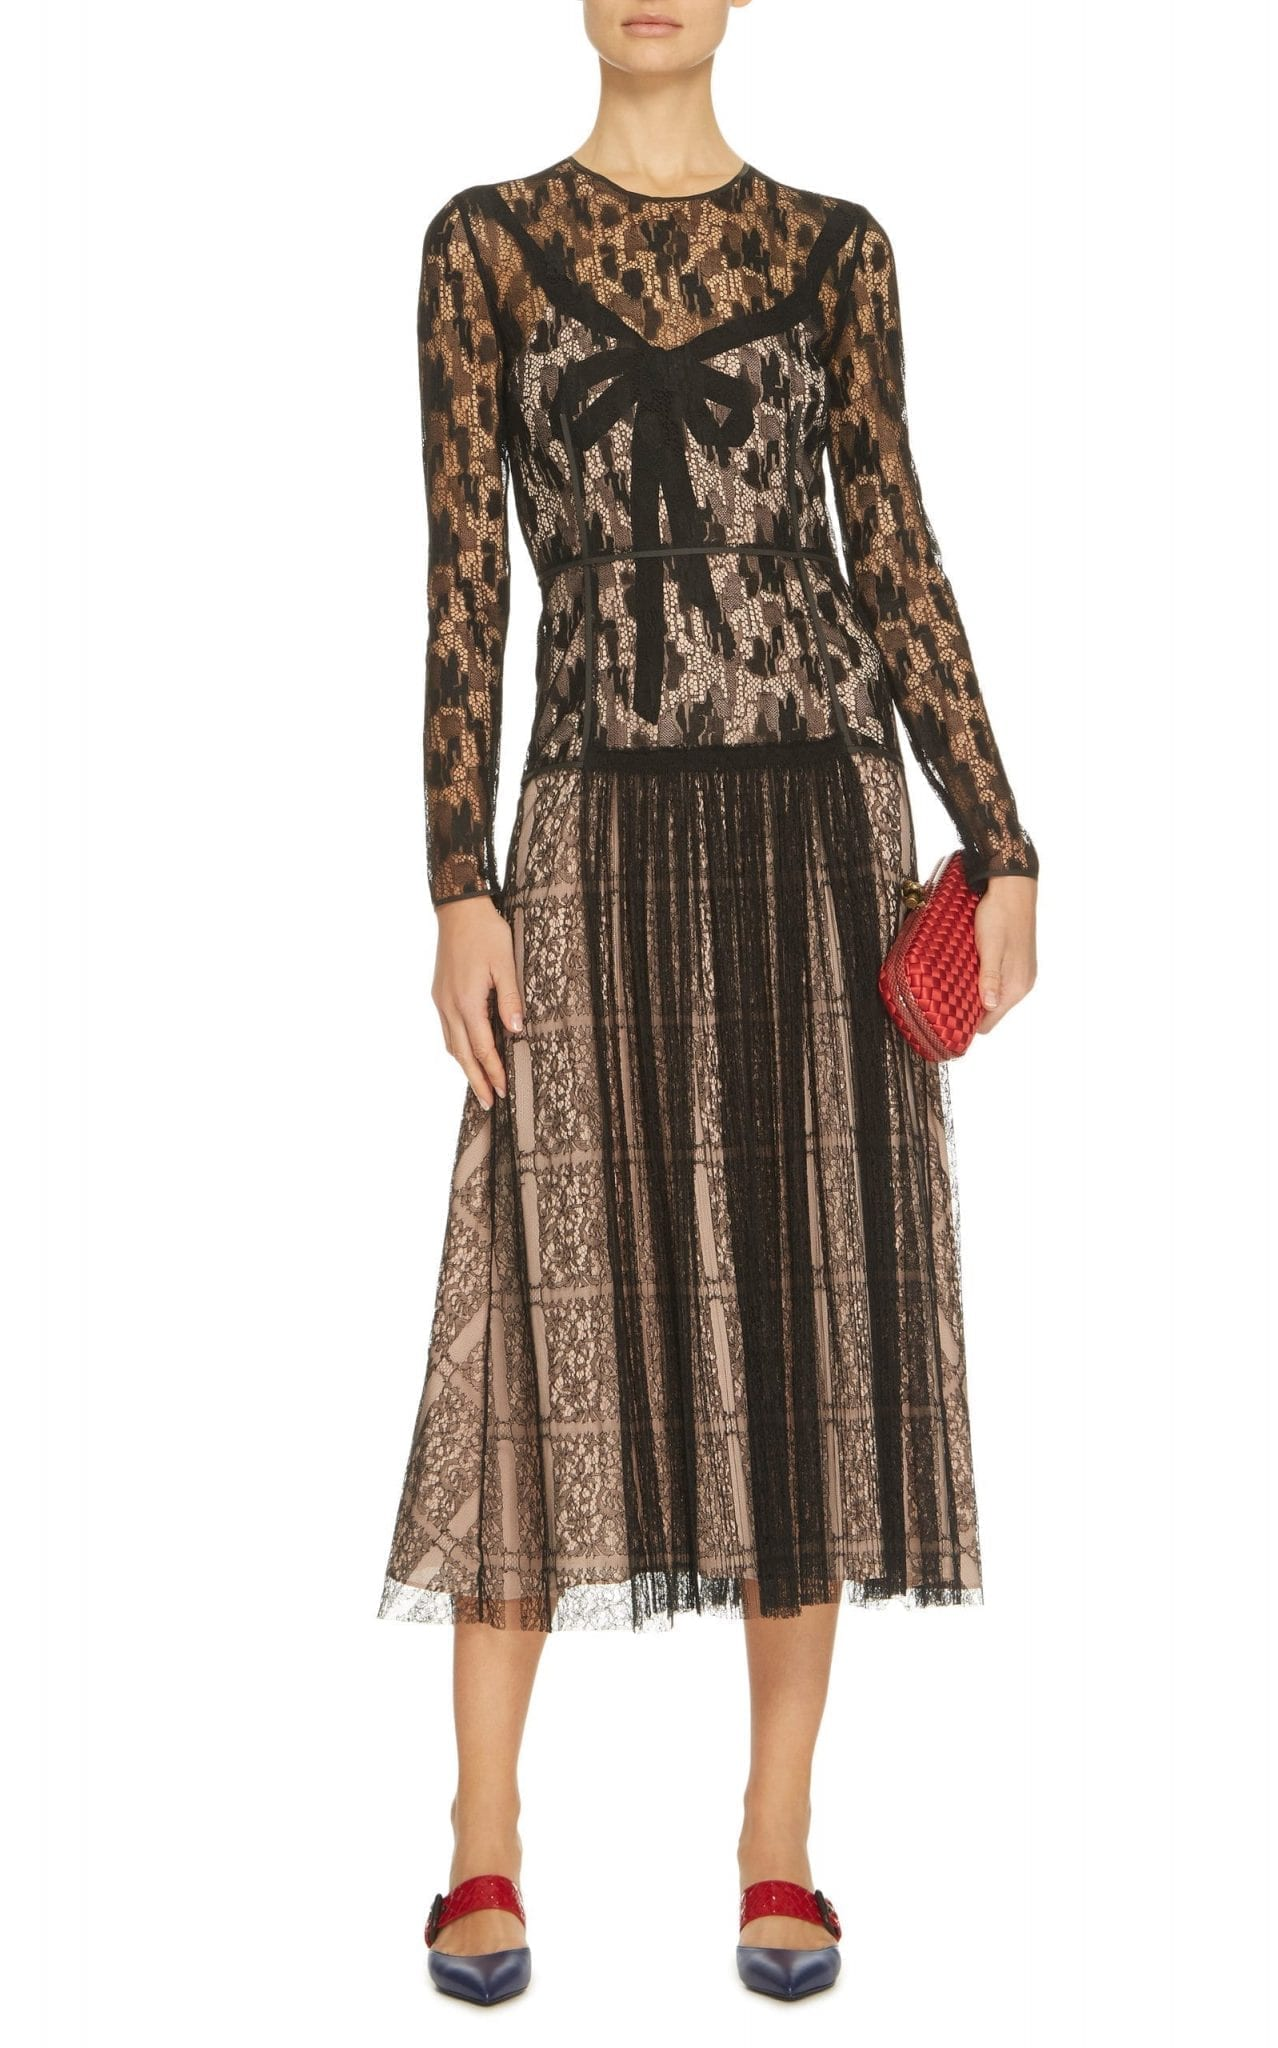 BOTTEGA VENETA Camouflage Lace Midi Black Dress